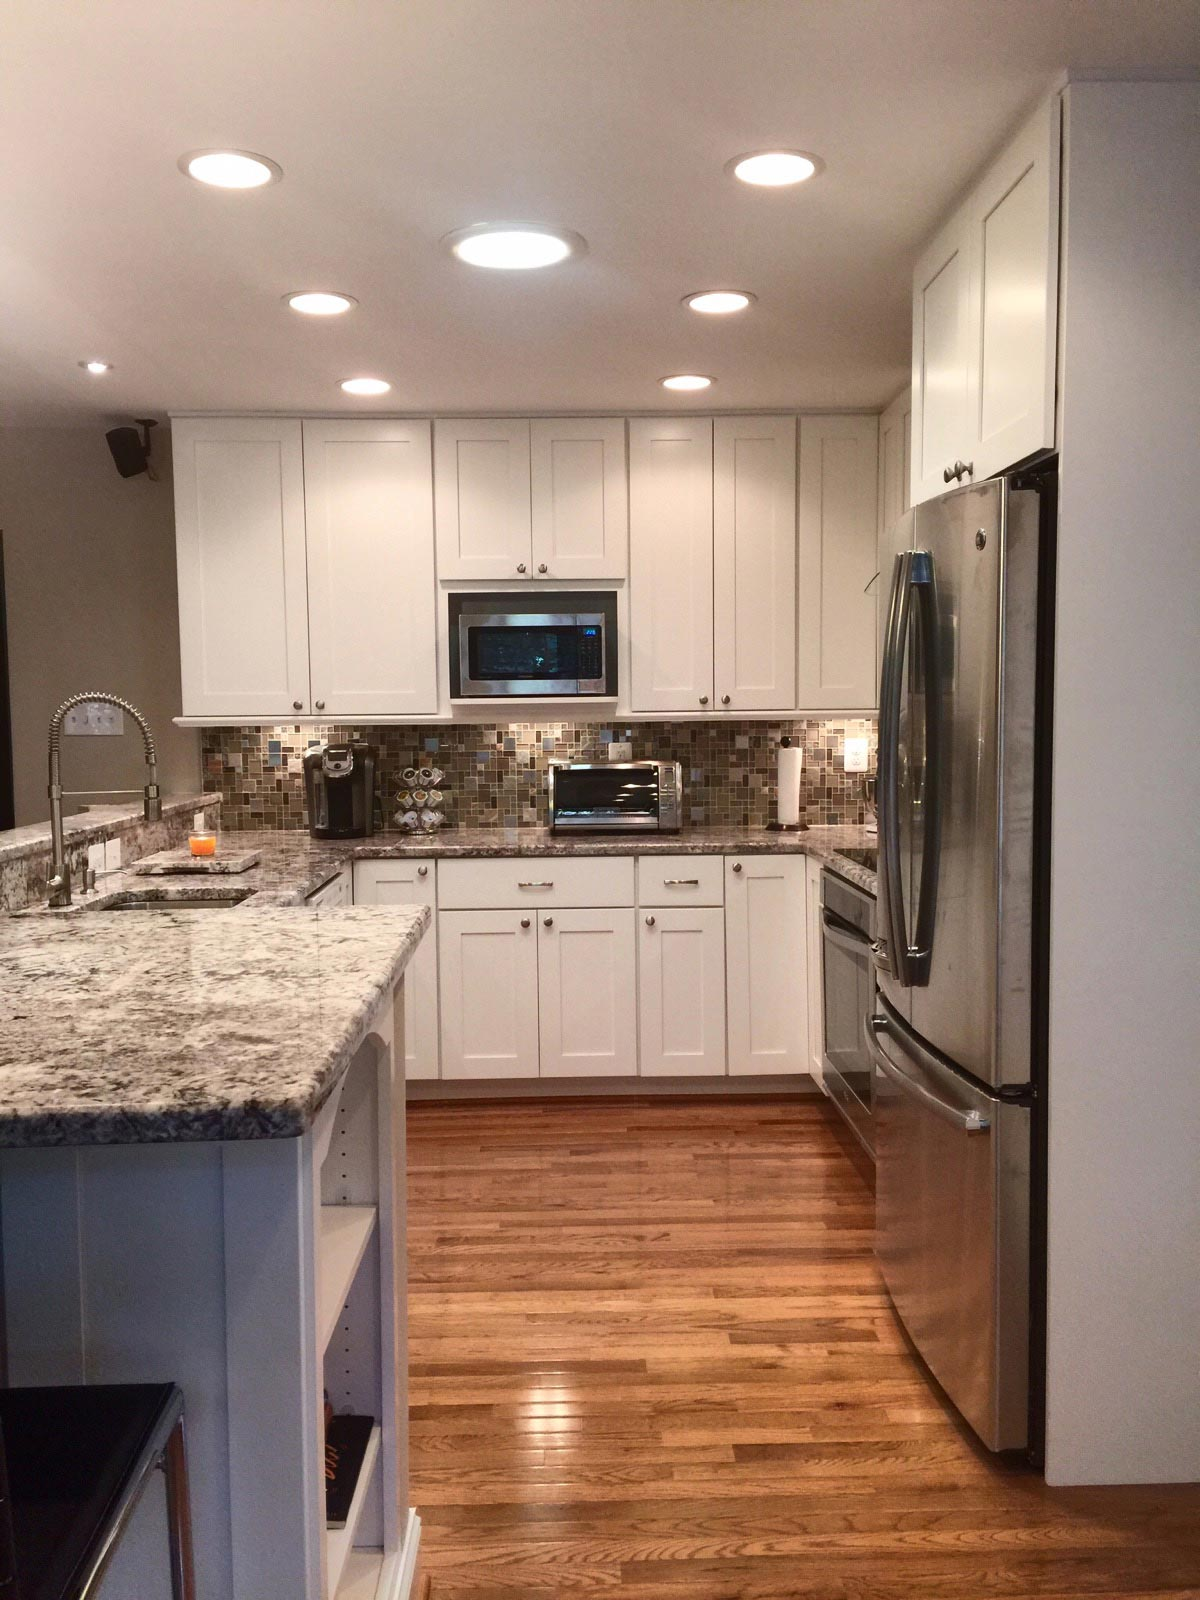 kitchen remodeling fairfax va island top remodel bianco renovations completed